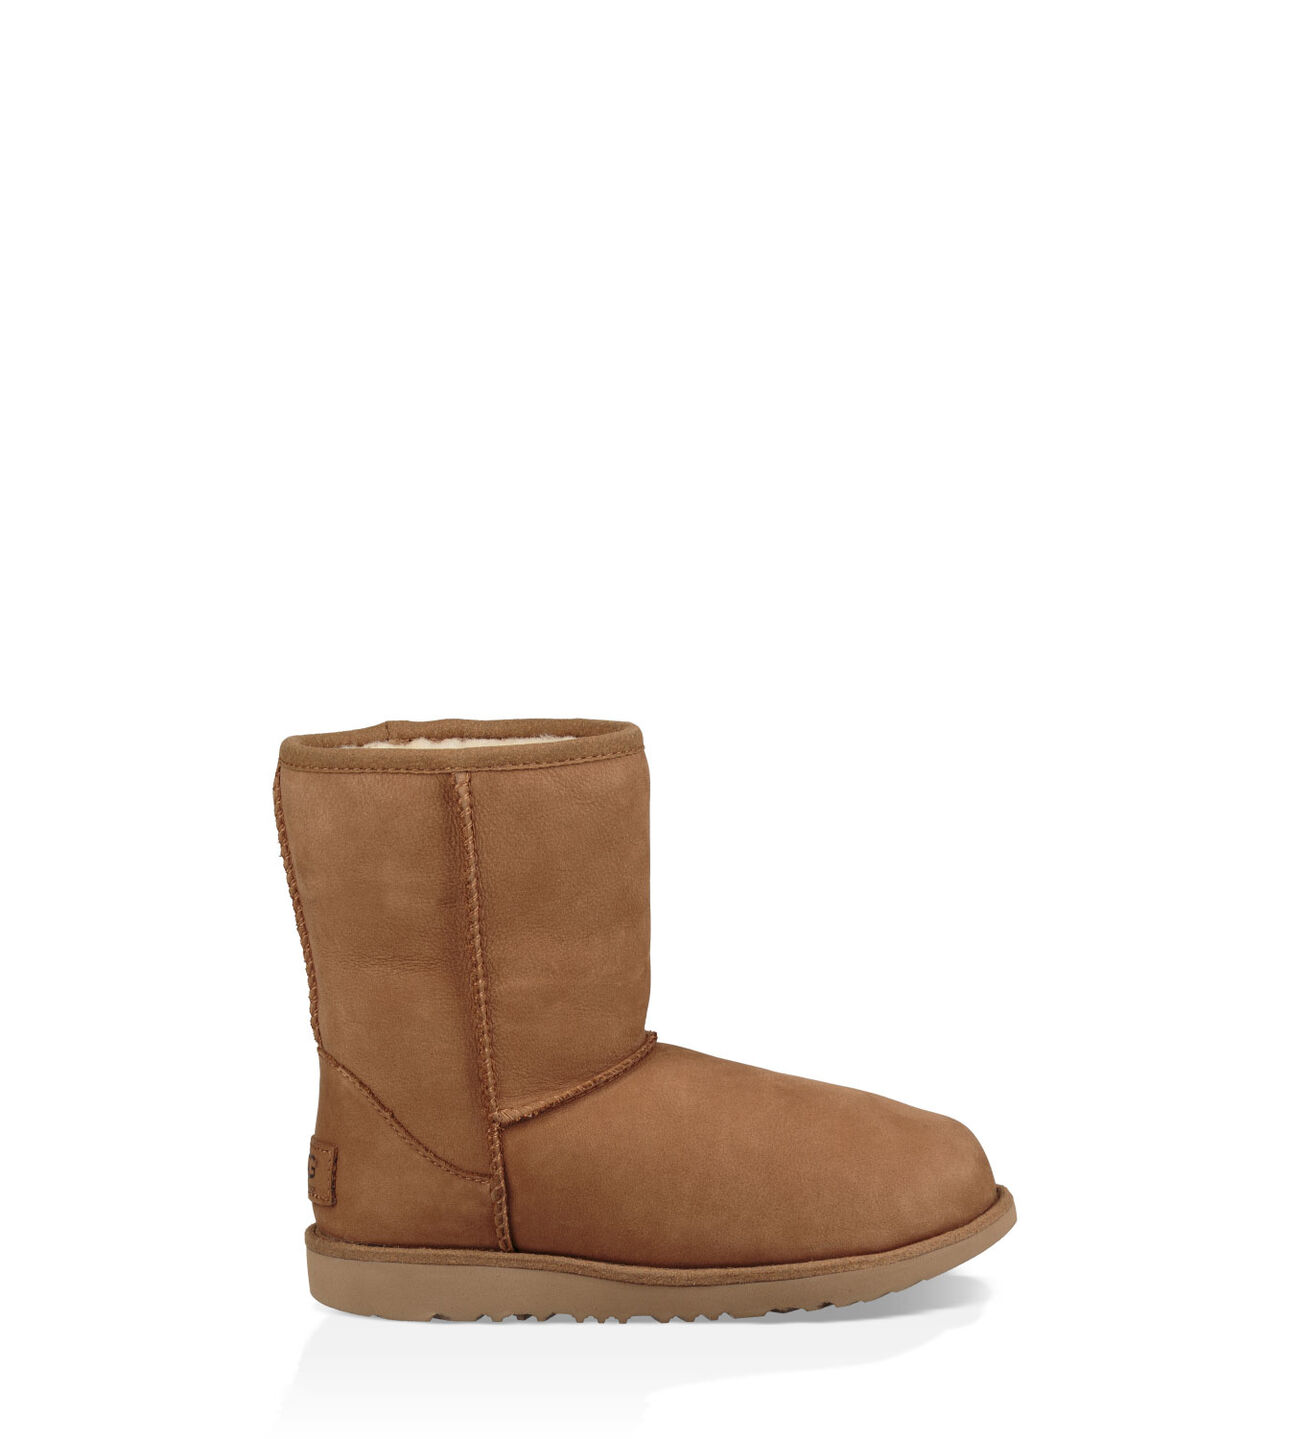 3f884cfdd02 Boots, Sandals, & Chukkas for Boys | UGG® Official